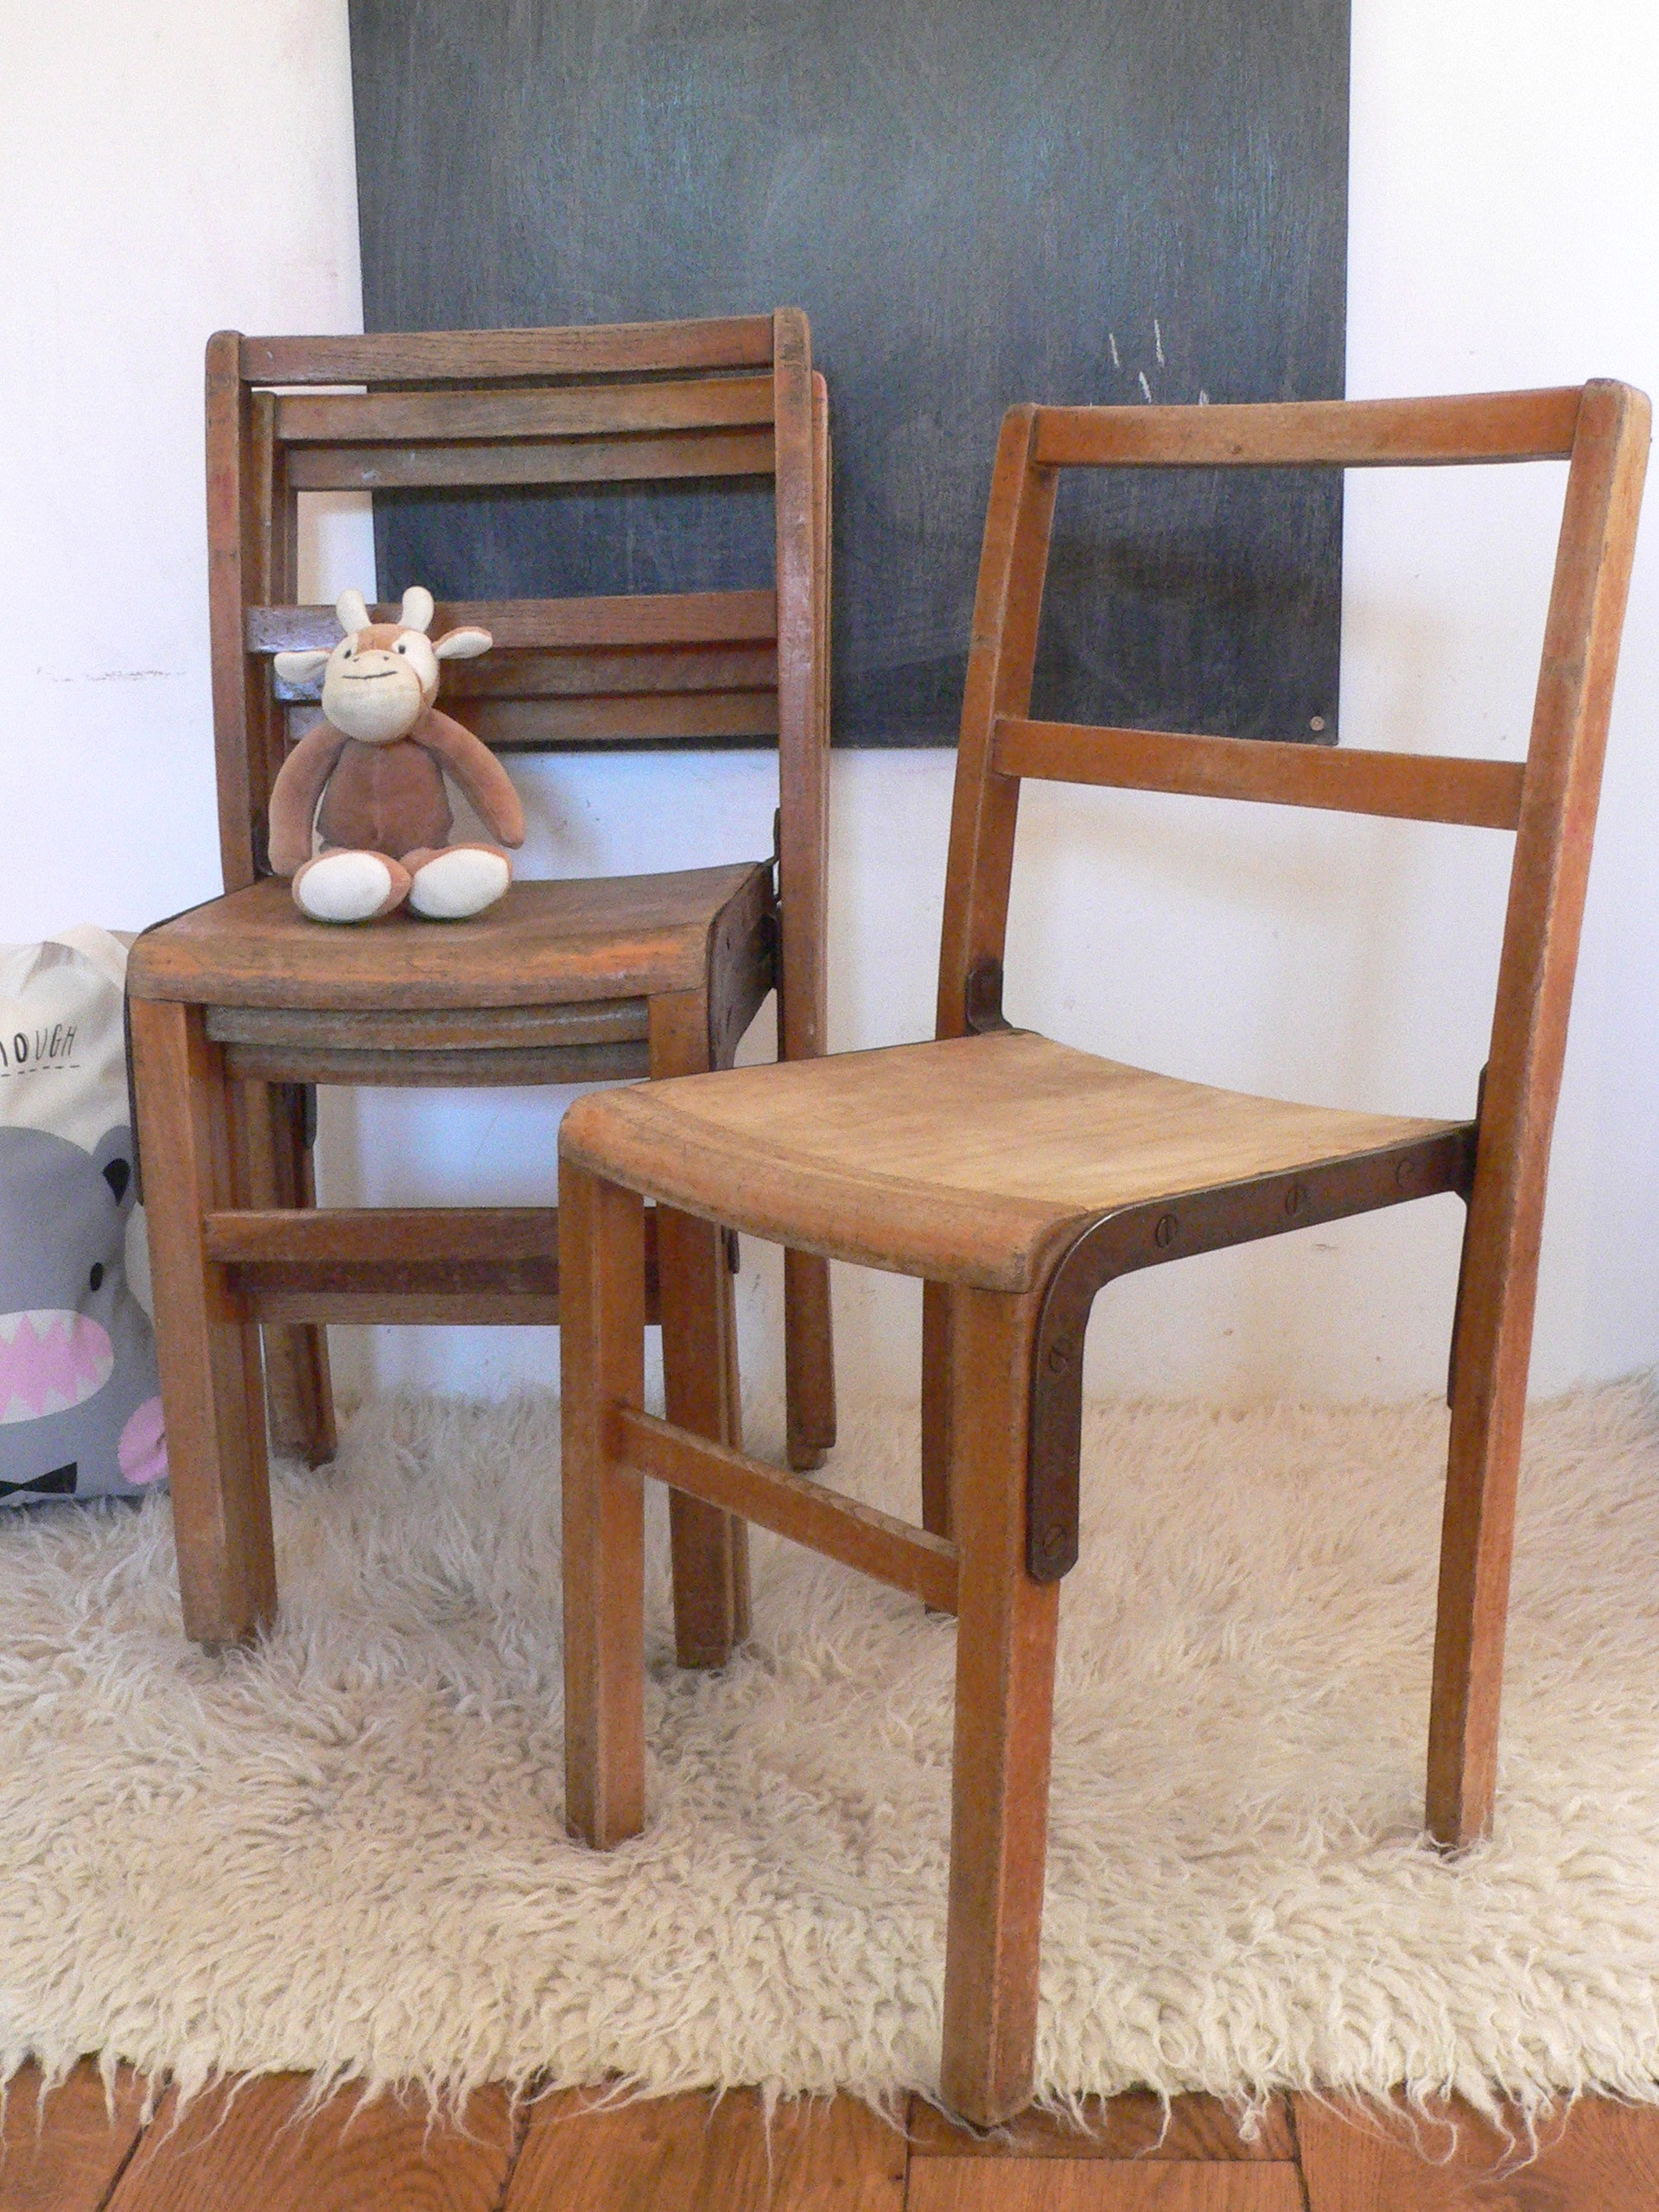 Vintage Nursery School Chair from peastyle